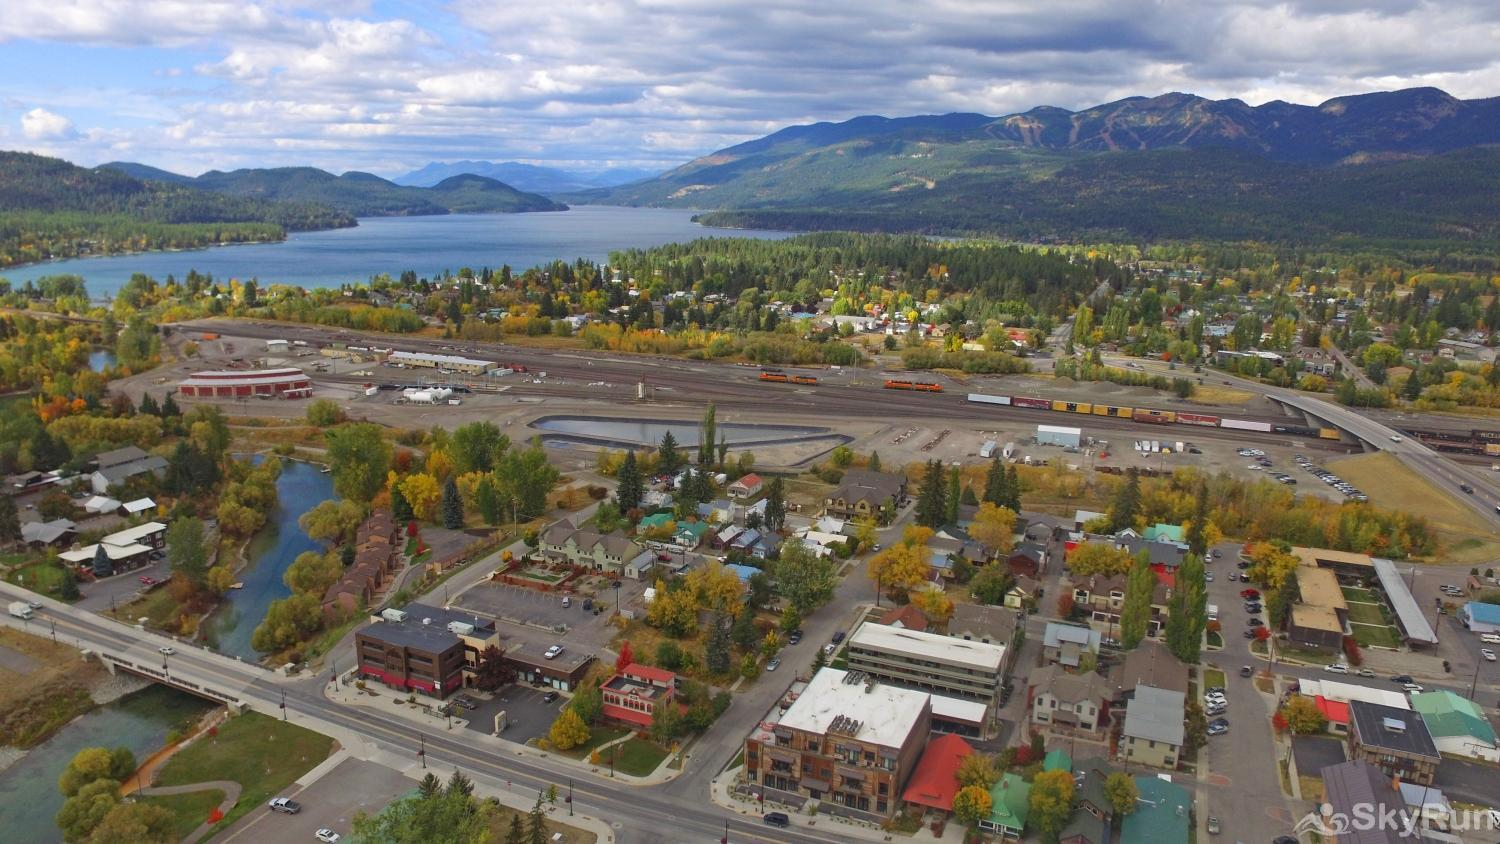 Highland Huckleberry Lodge Whitefish, Montana - Four seasons of fun in the mountains, lakes, and town!